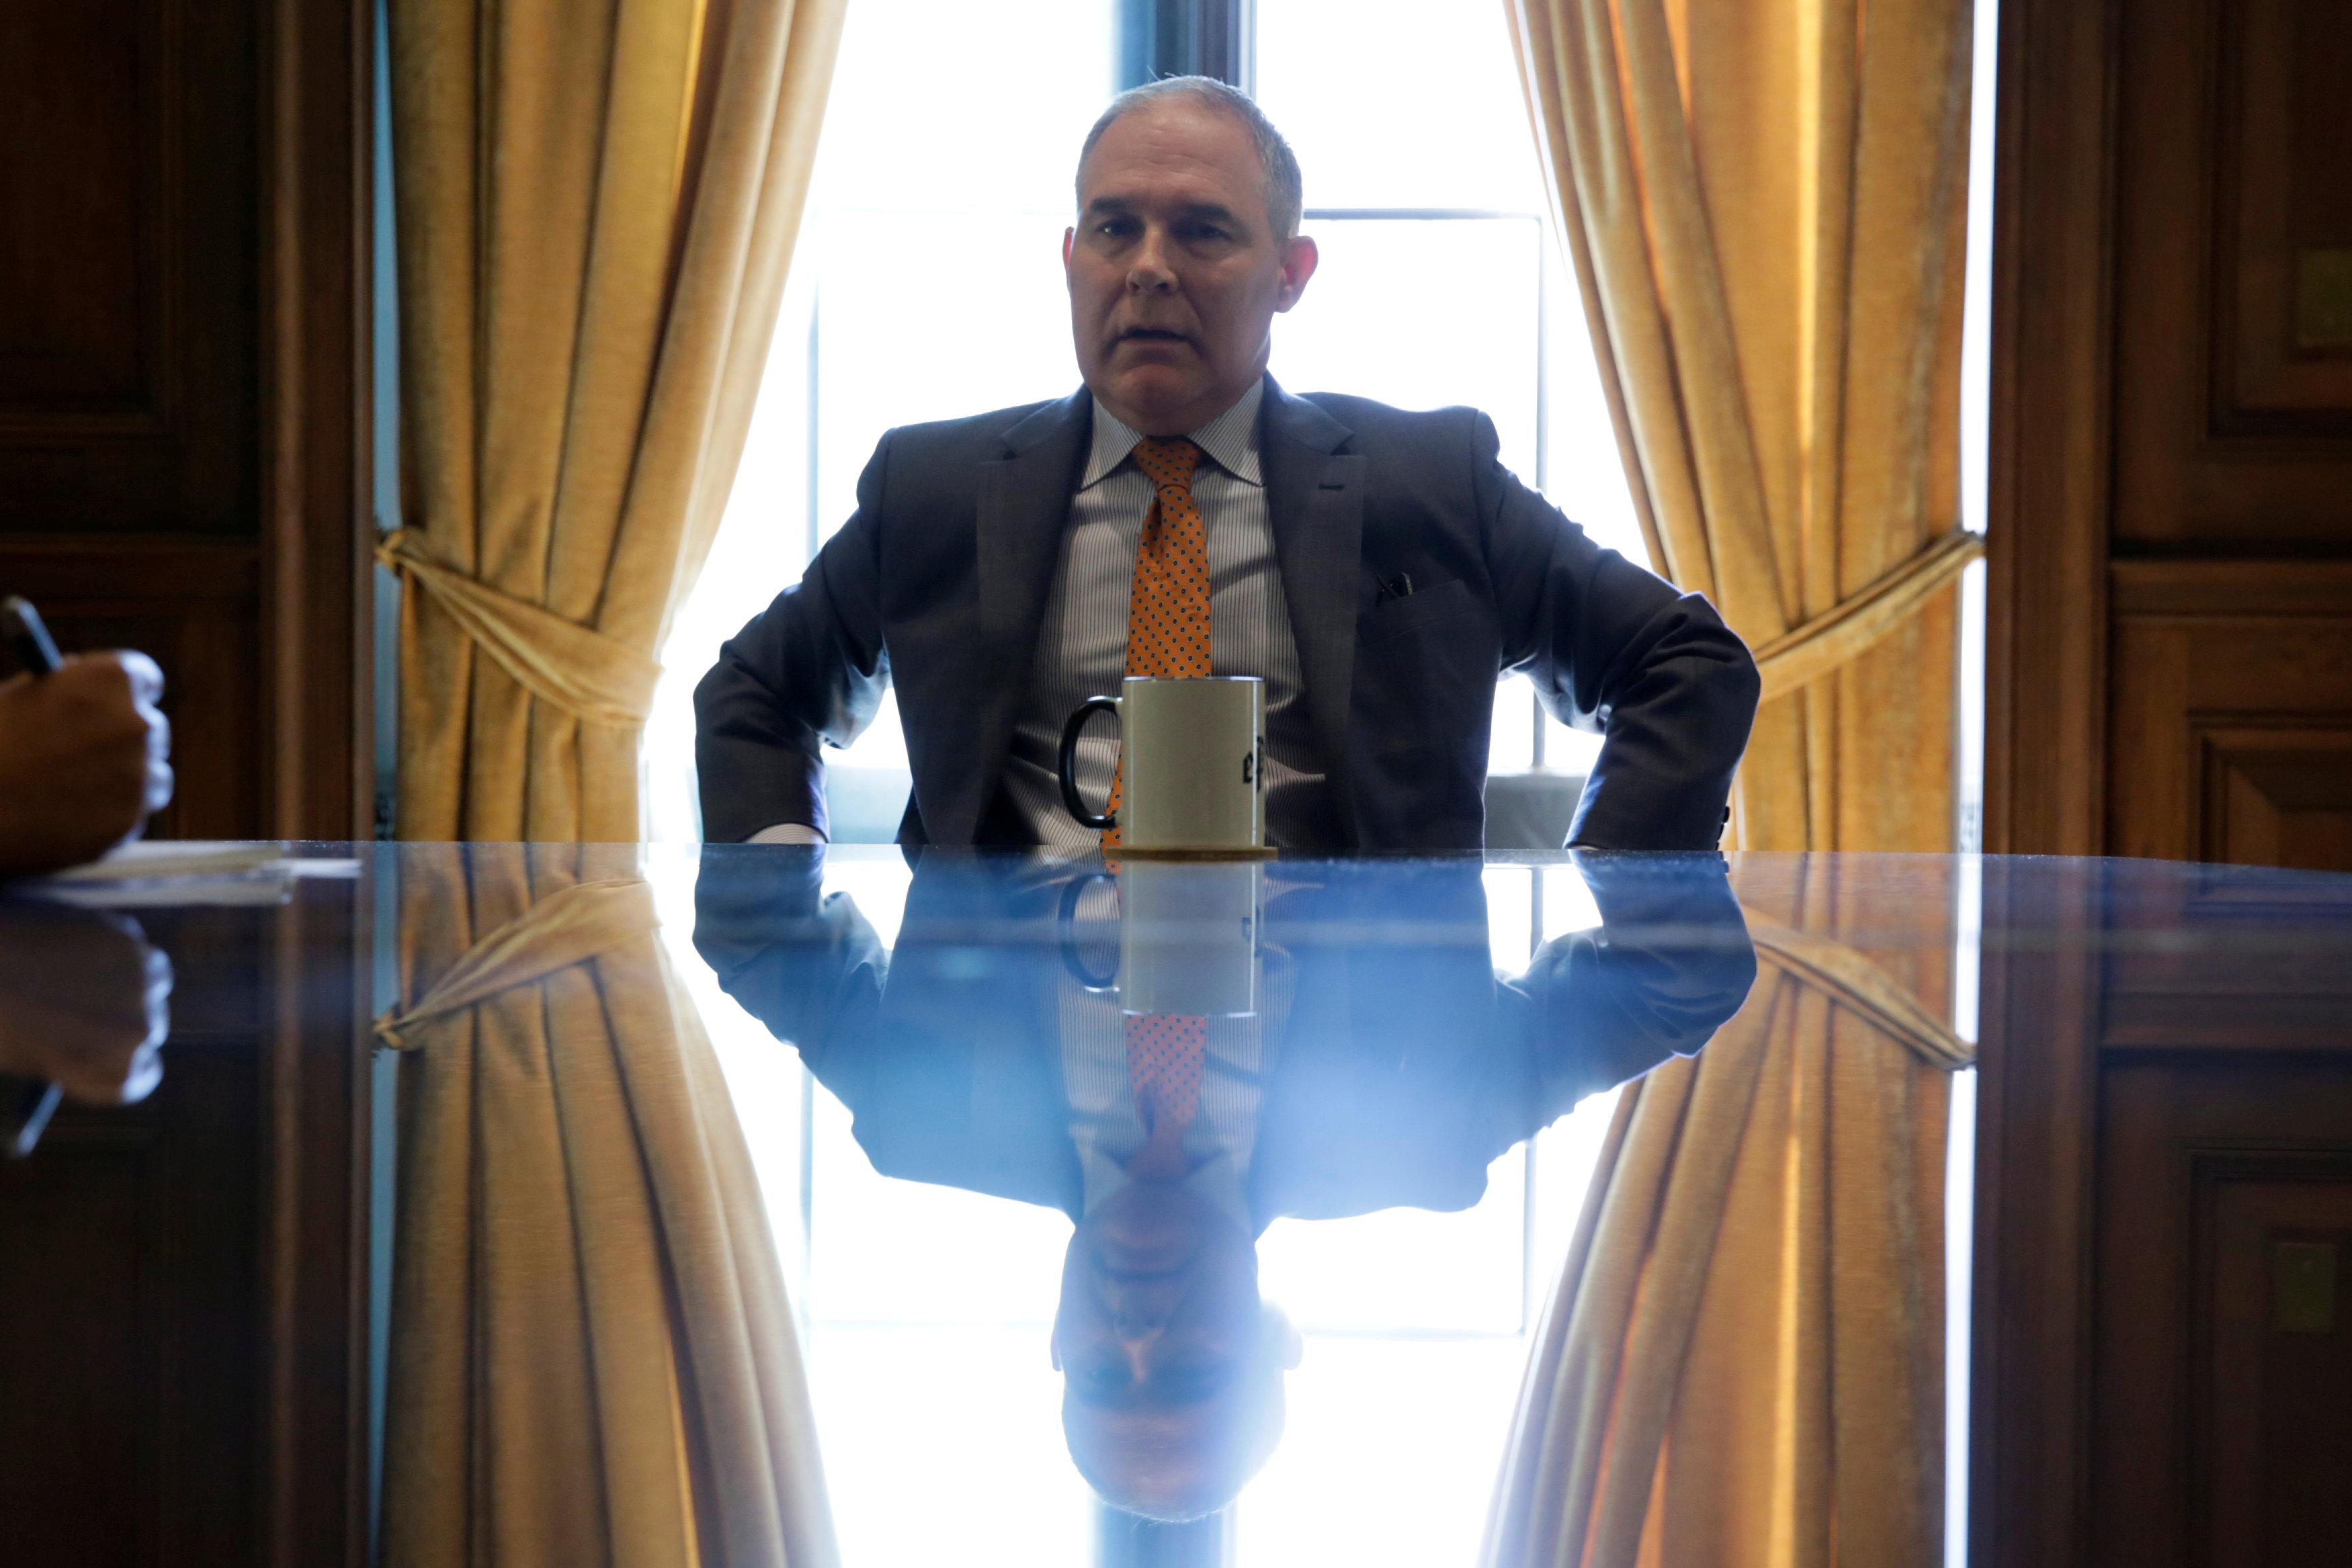 Environmental Protection Agency Administrator Scott Pruitt speaks during an interview at his office in Washington, U.S., July 10, 2017.  Yuri Gripas